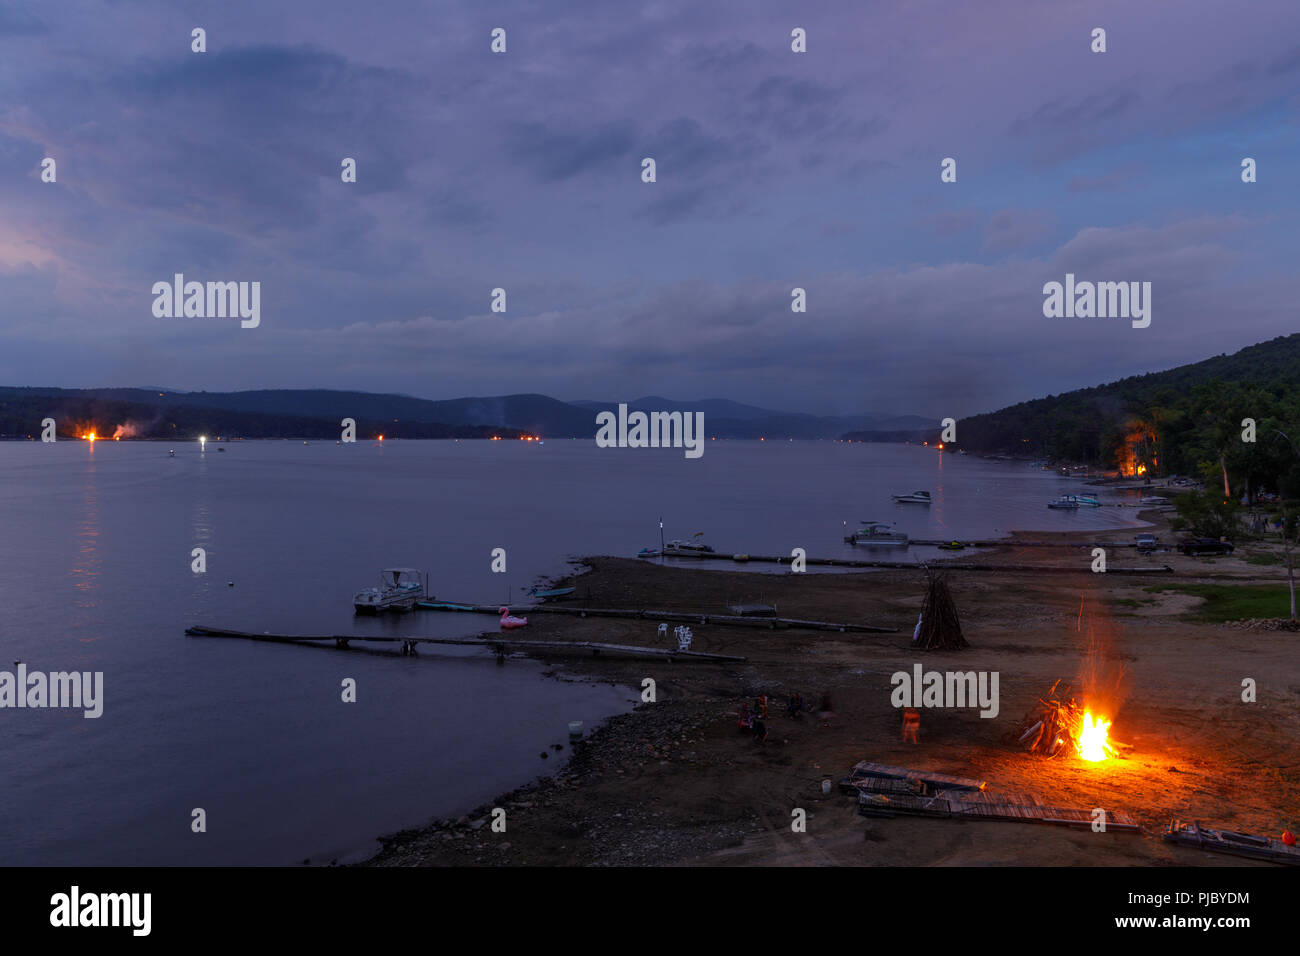 "Summer ends with a ""Ring of Fire"" on Labor Day weekend, bonfires lit along the shores of Great Sacandaga Lake, southern Adirondacks, New York State. Stock Photo"